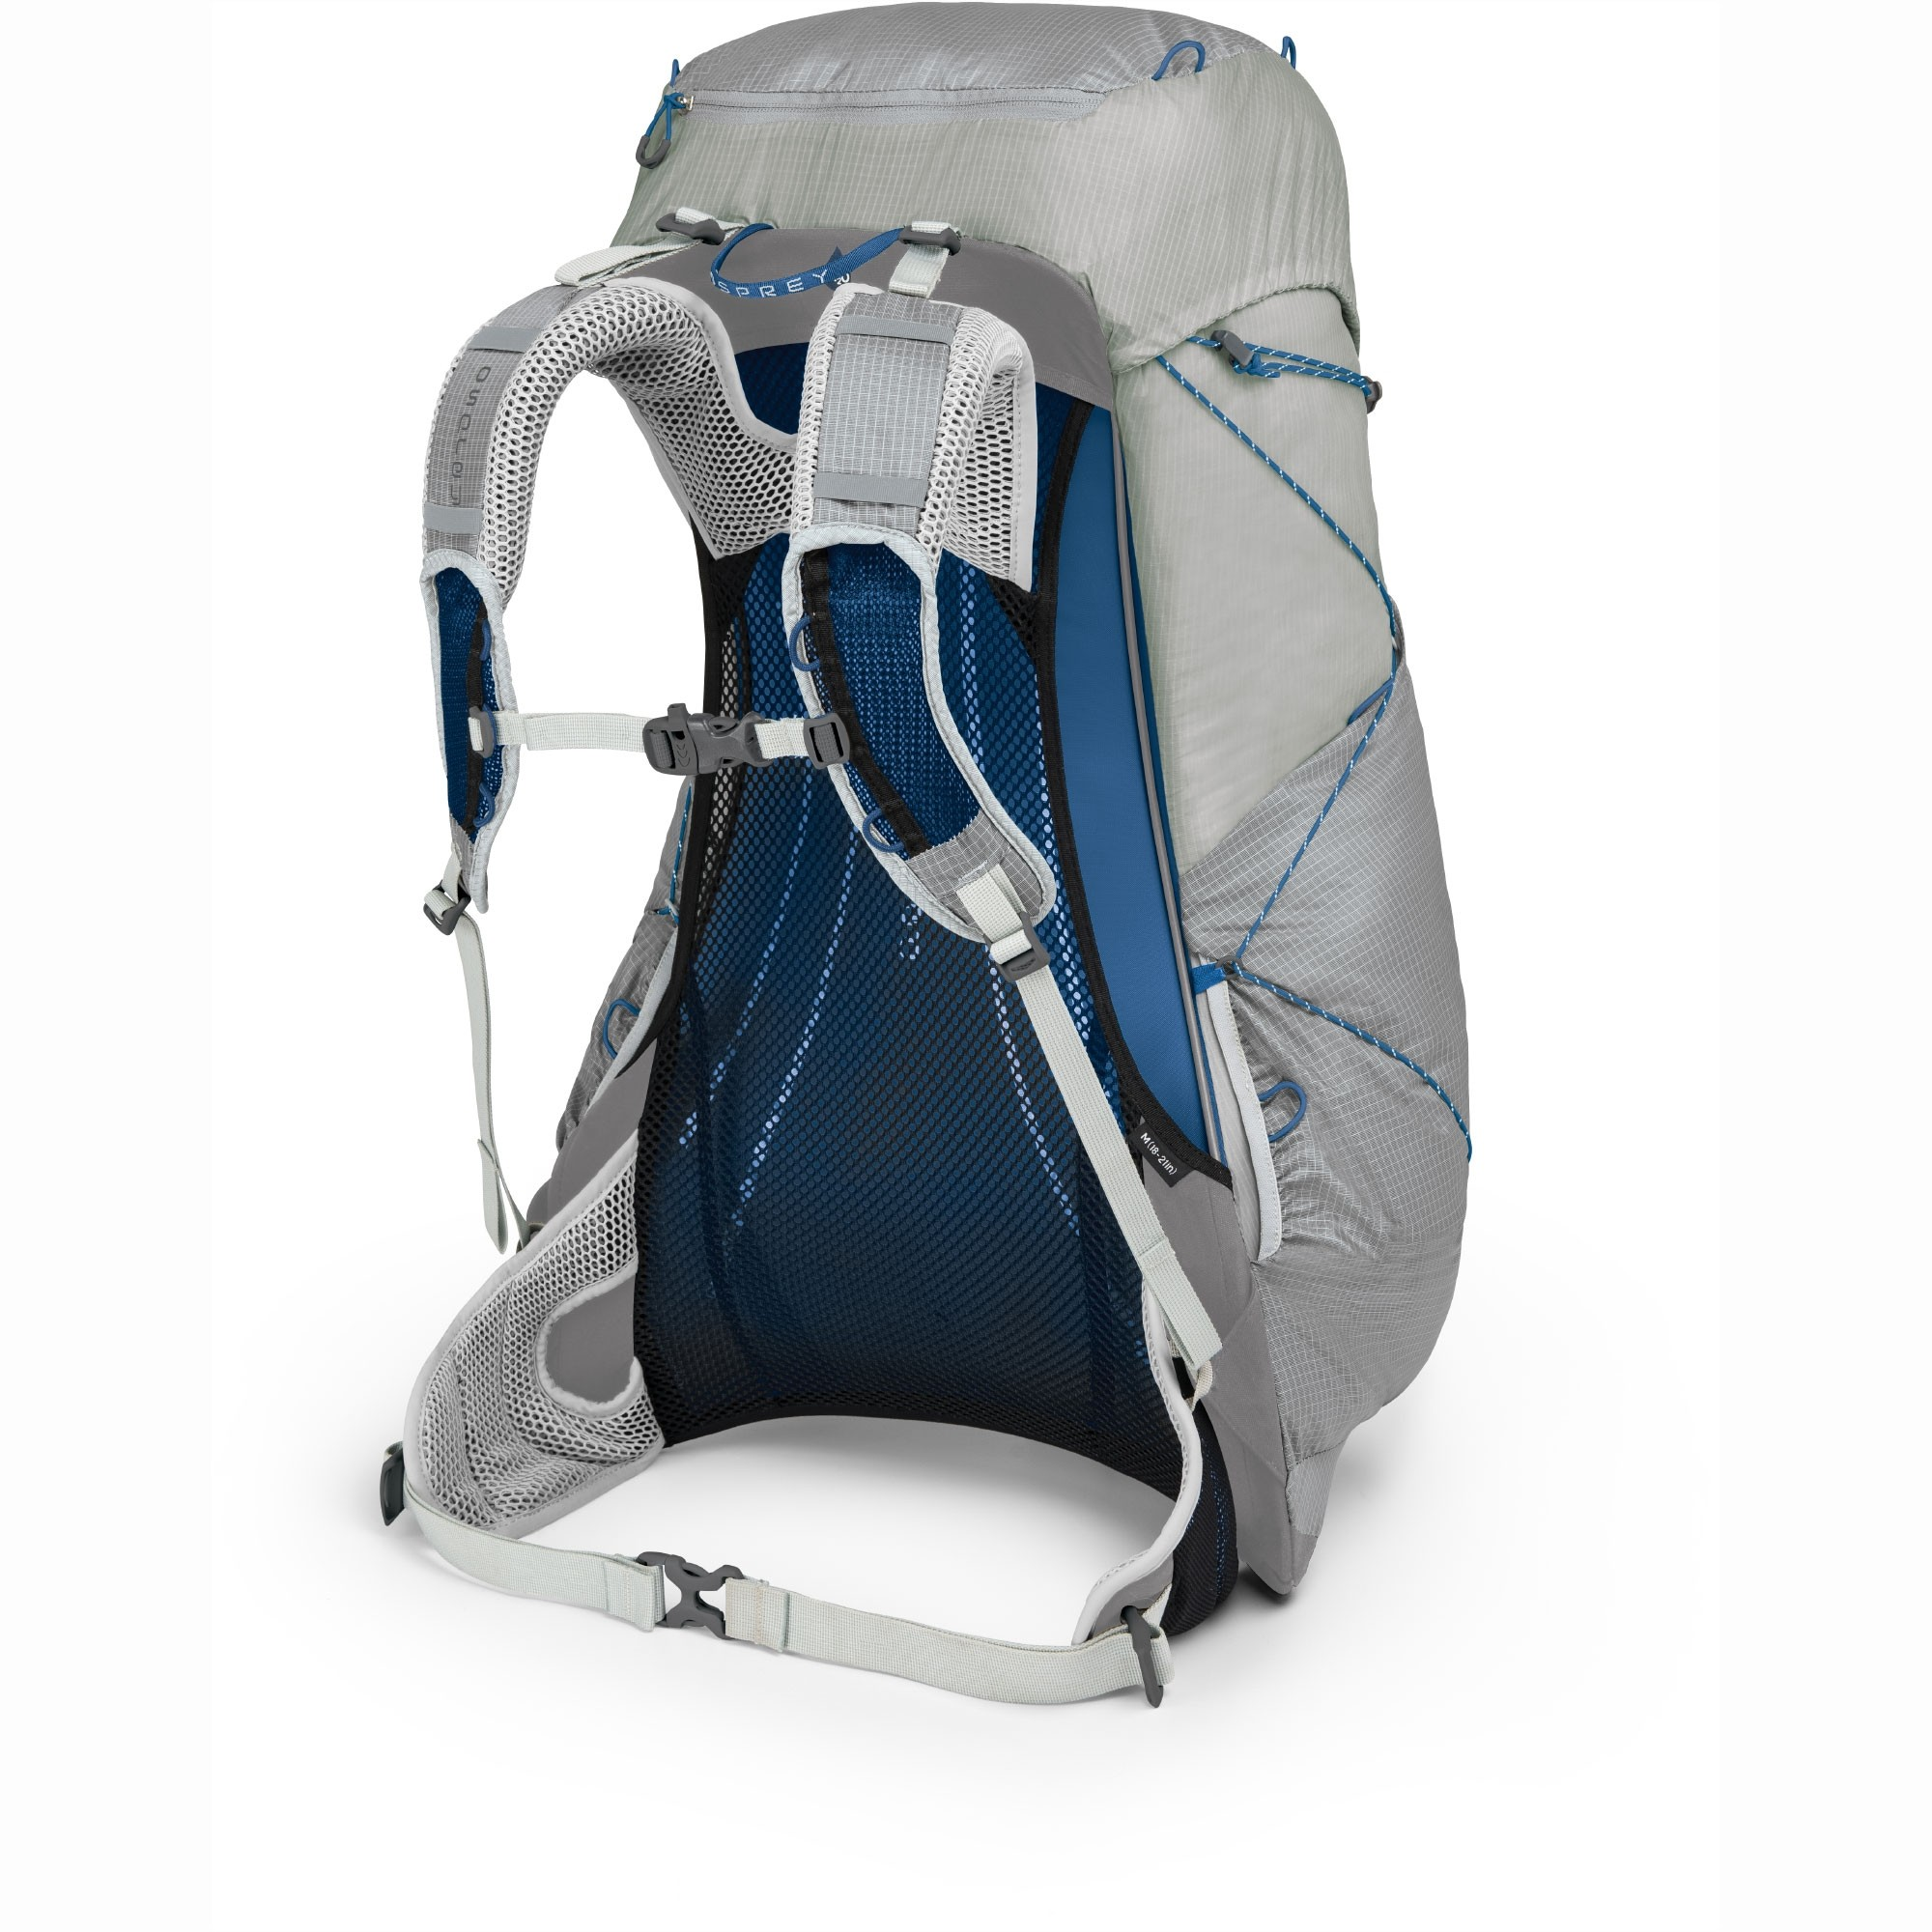 Osprey Levity 45 Ultralight Backpack - Parallax Silver - Back System